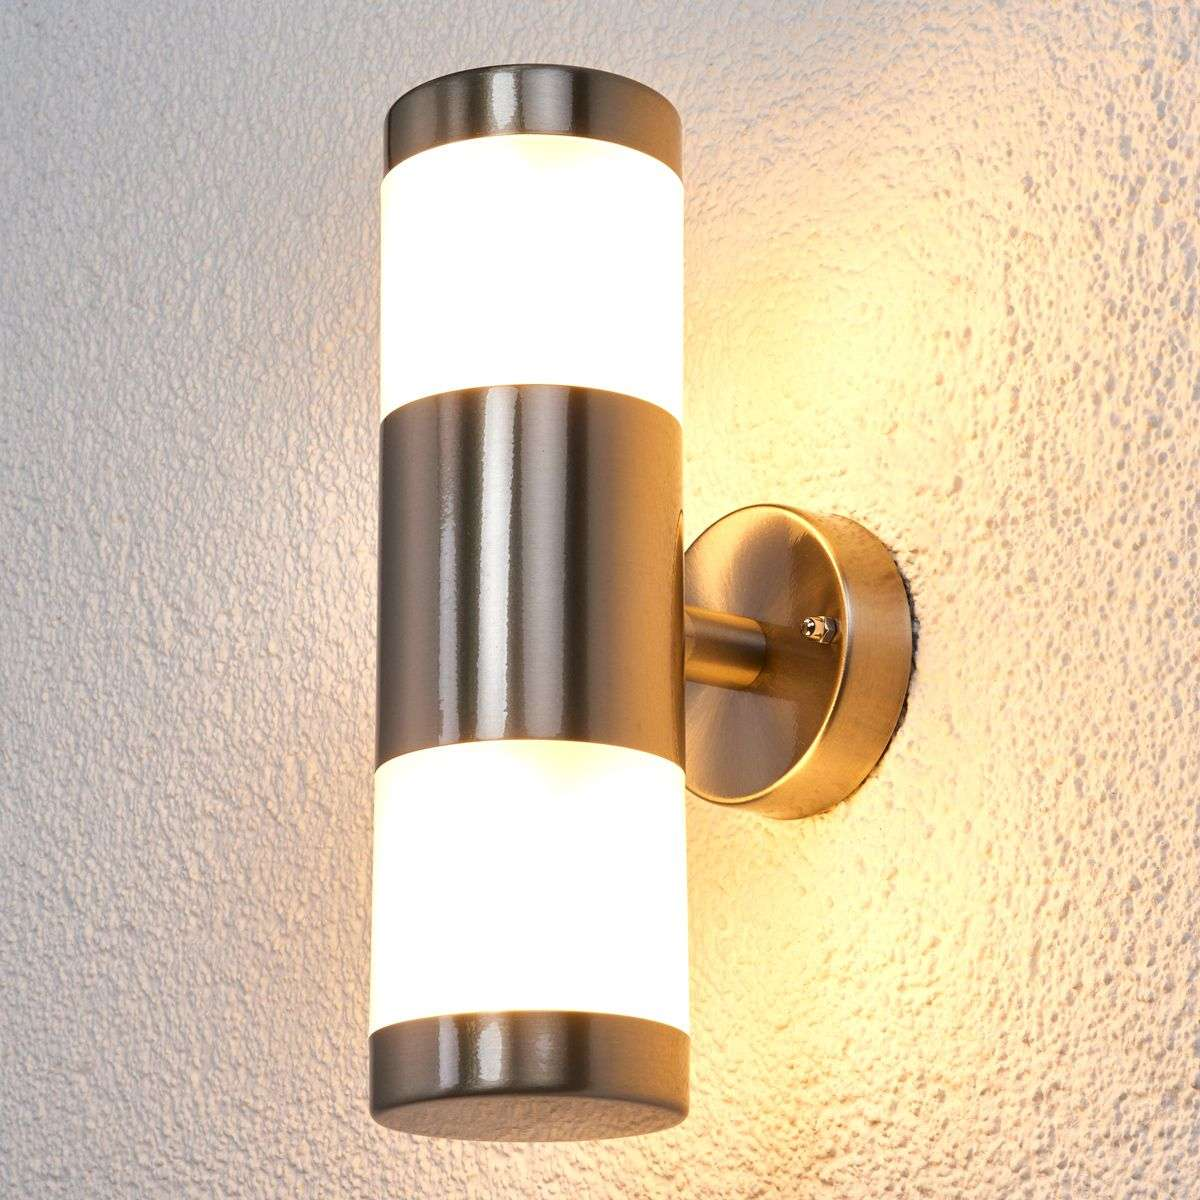 2 bulb stainless steel wall lamp for outdoors led lights 2 bulb stainless steel wall lamp for outdoors led 9988065 39 workwithnaturefo